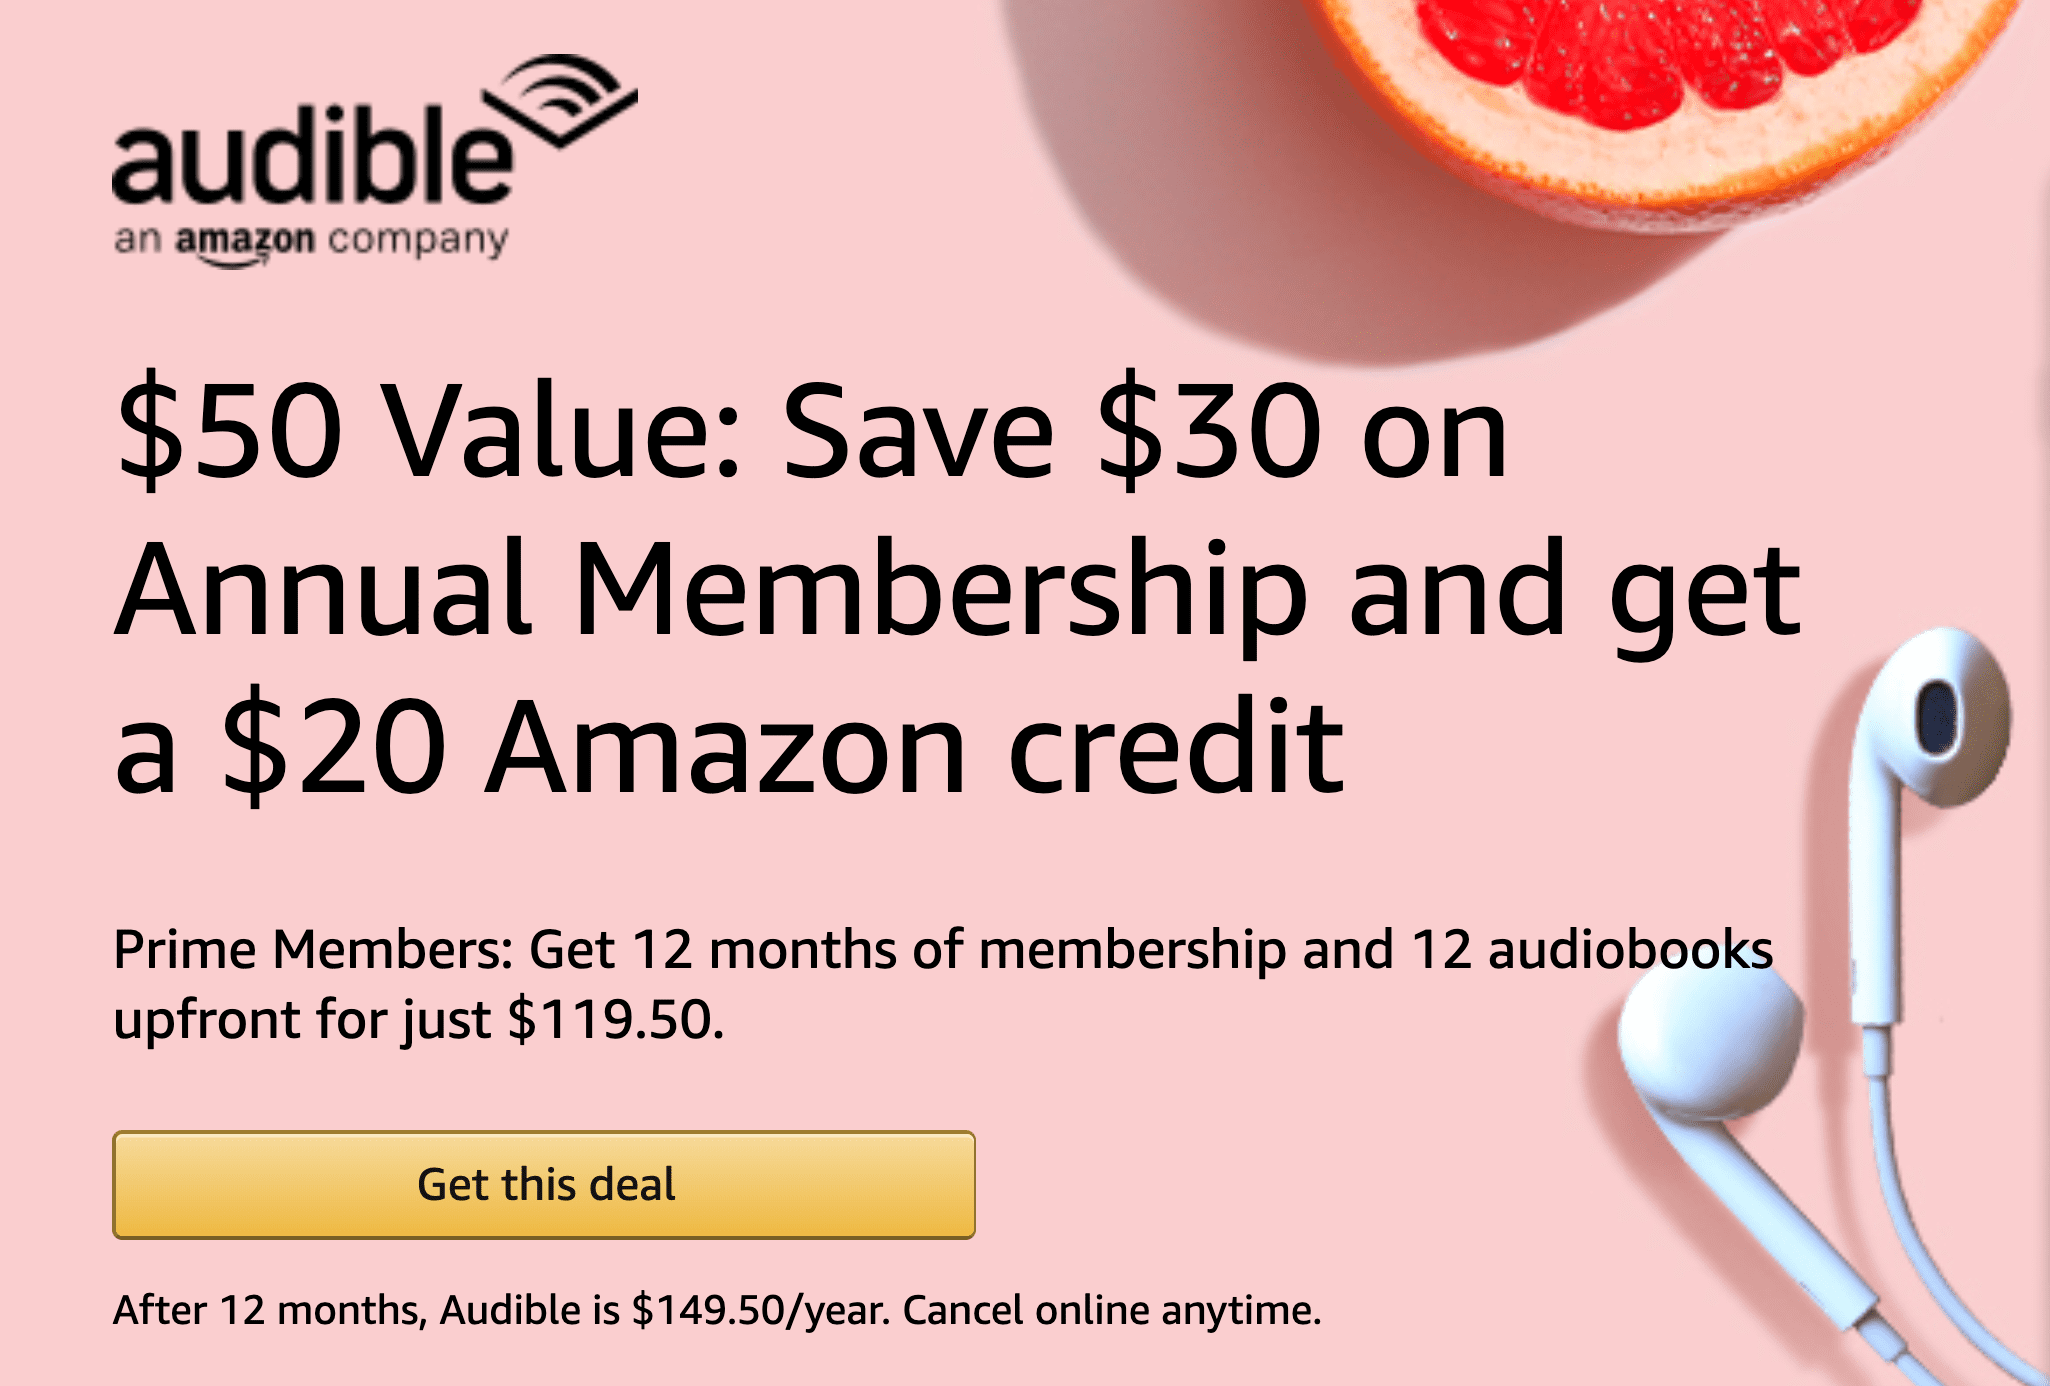 Amazon Audible Cancel Membership Amazon Prime Audible Save 30 On Annual Membership 20 Amazon